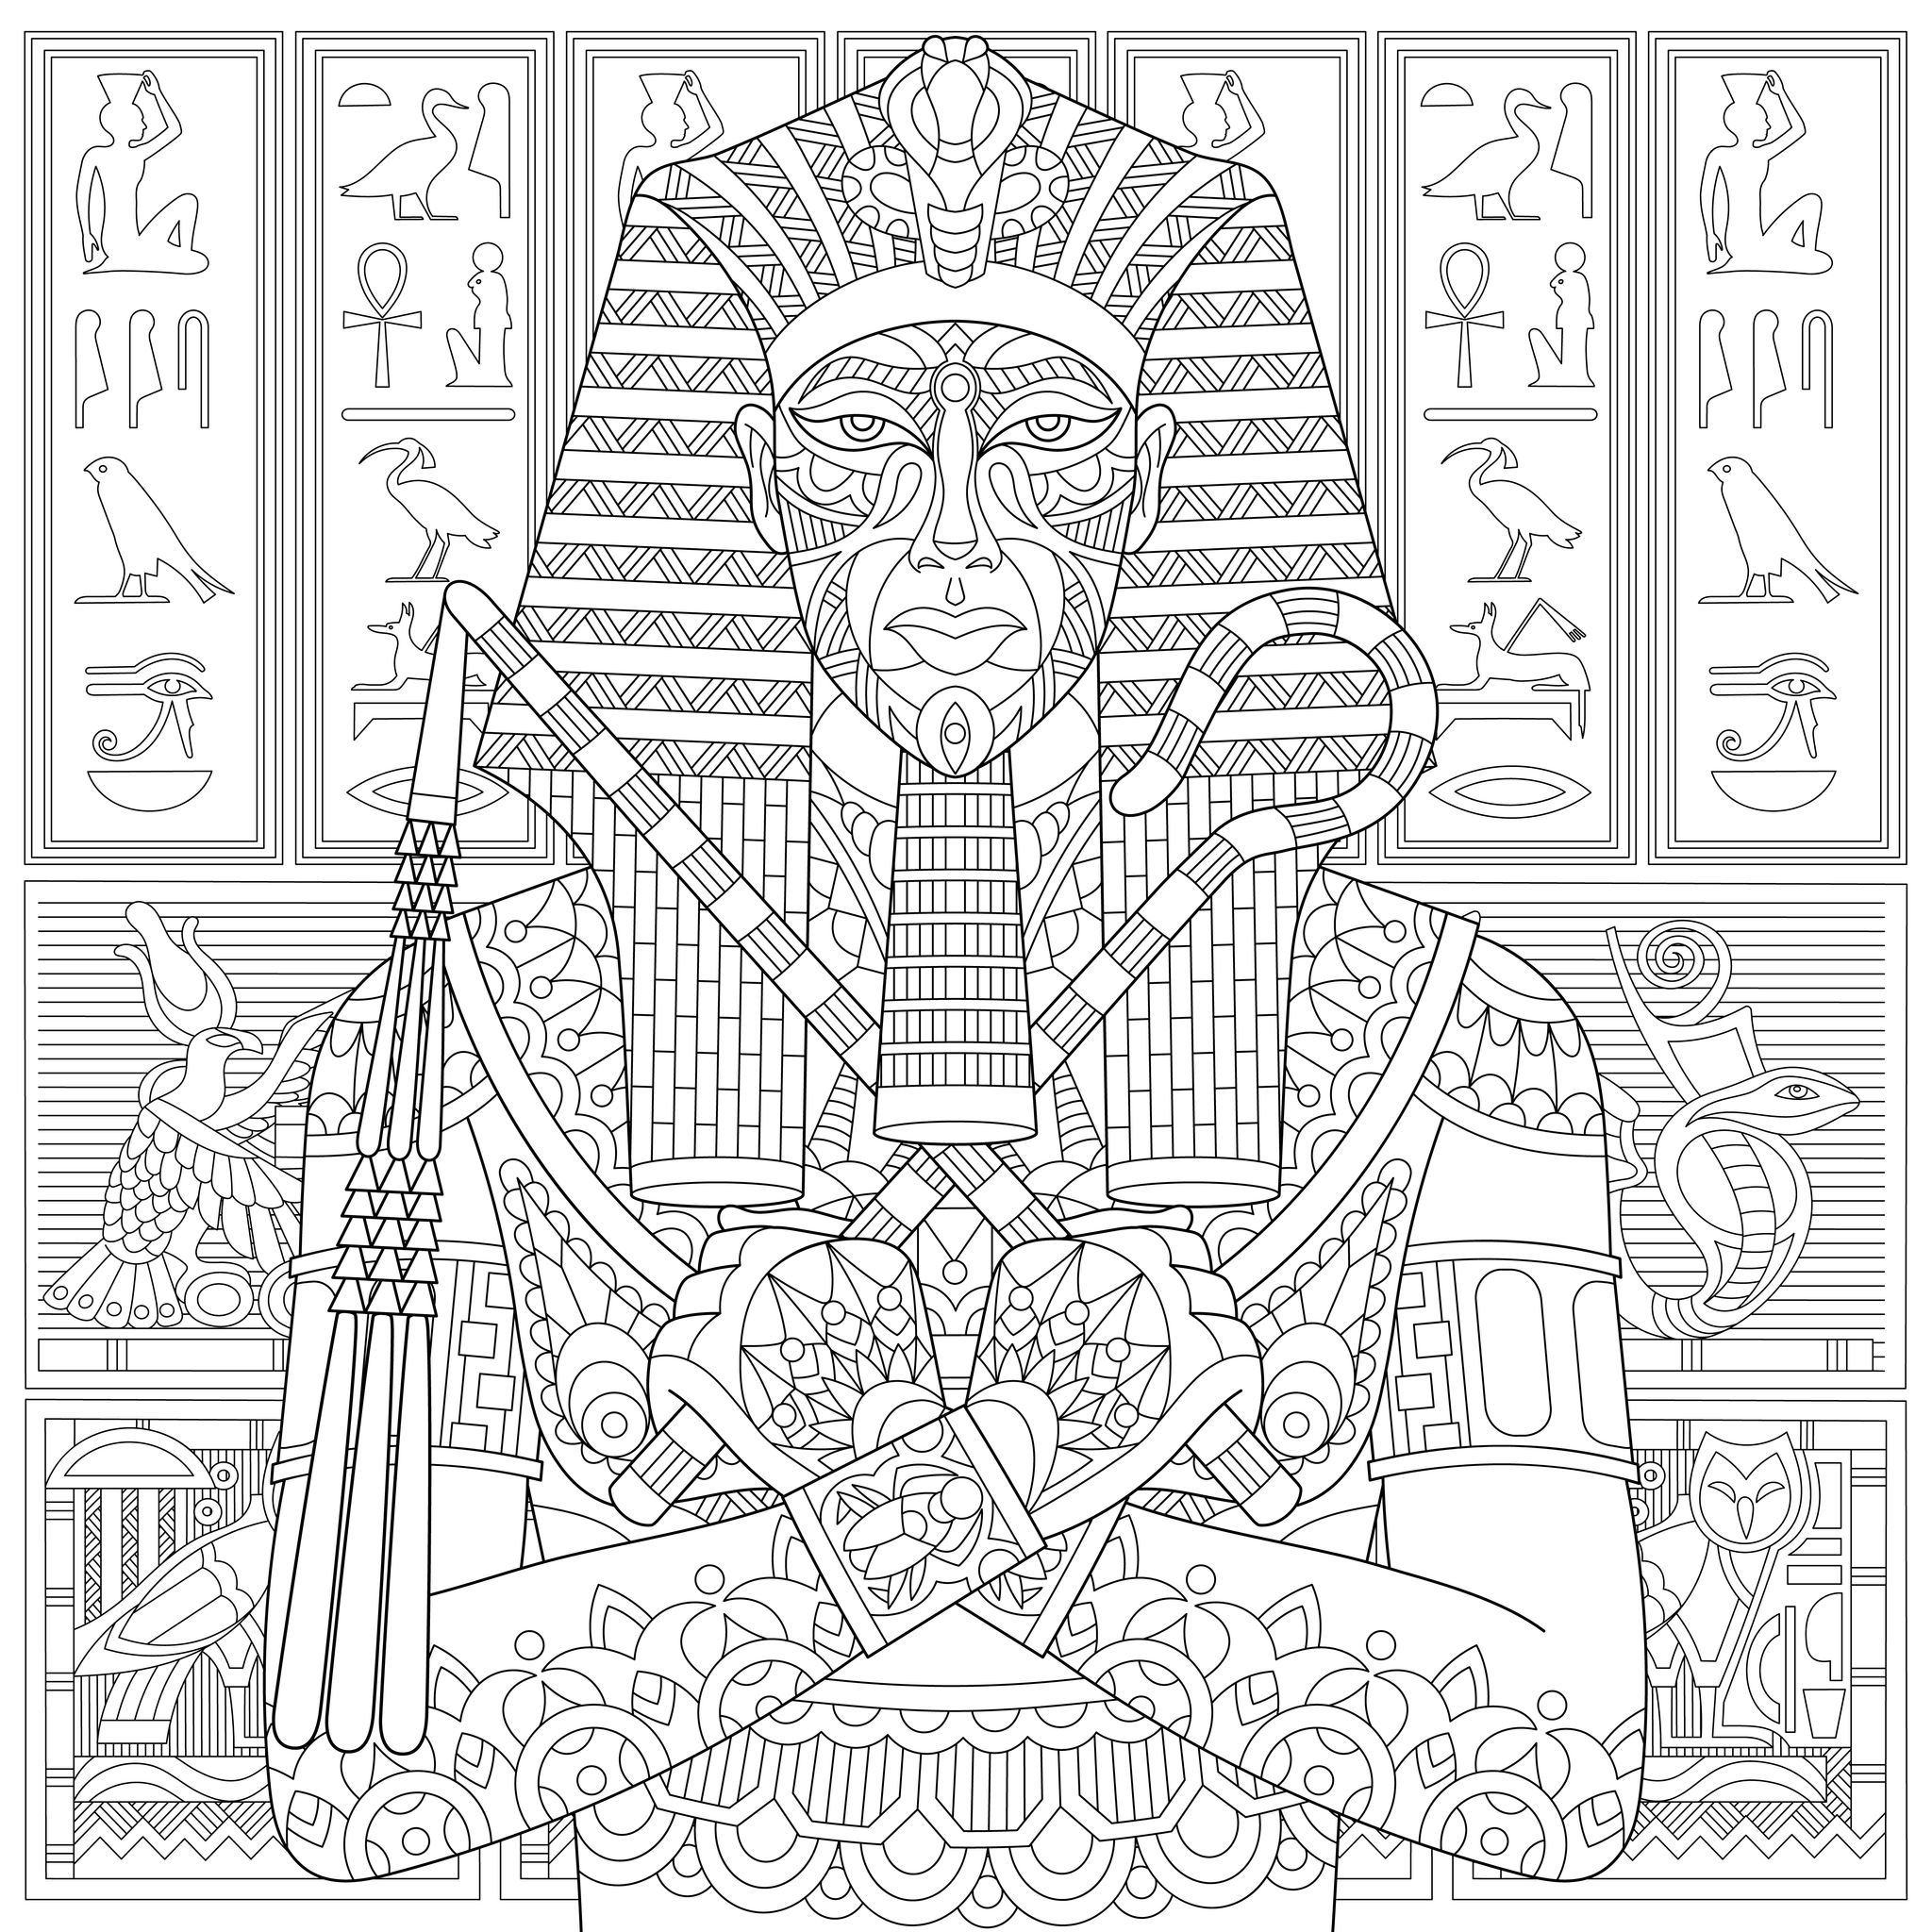 Pharaoh from ancient egypt egypt hieroglyphs coloring pages pharaoh from ancient egypt egypt hieroglyphs coloring pages for adults justcolor biocorpaavc